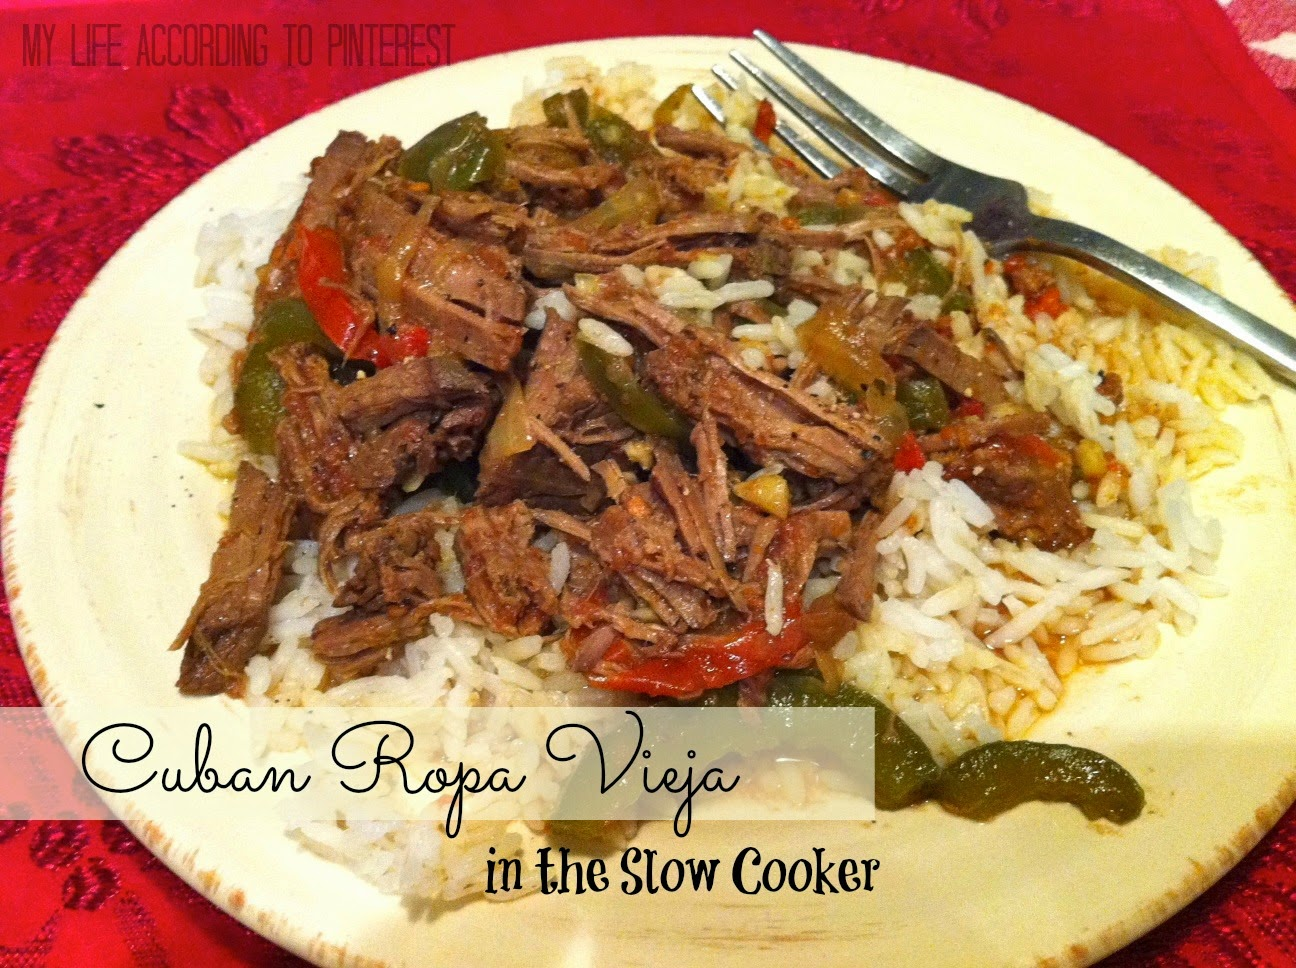 ... According to Pinterest: Delish Dinner: Ropa Vieja in the Slow Cooker